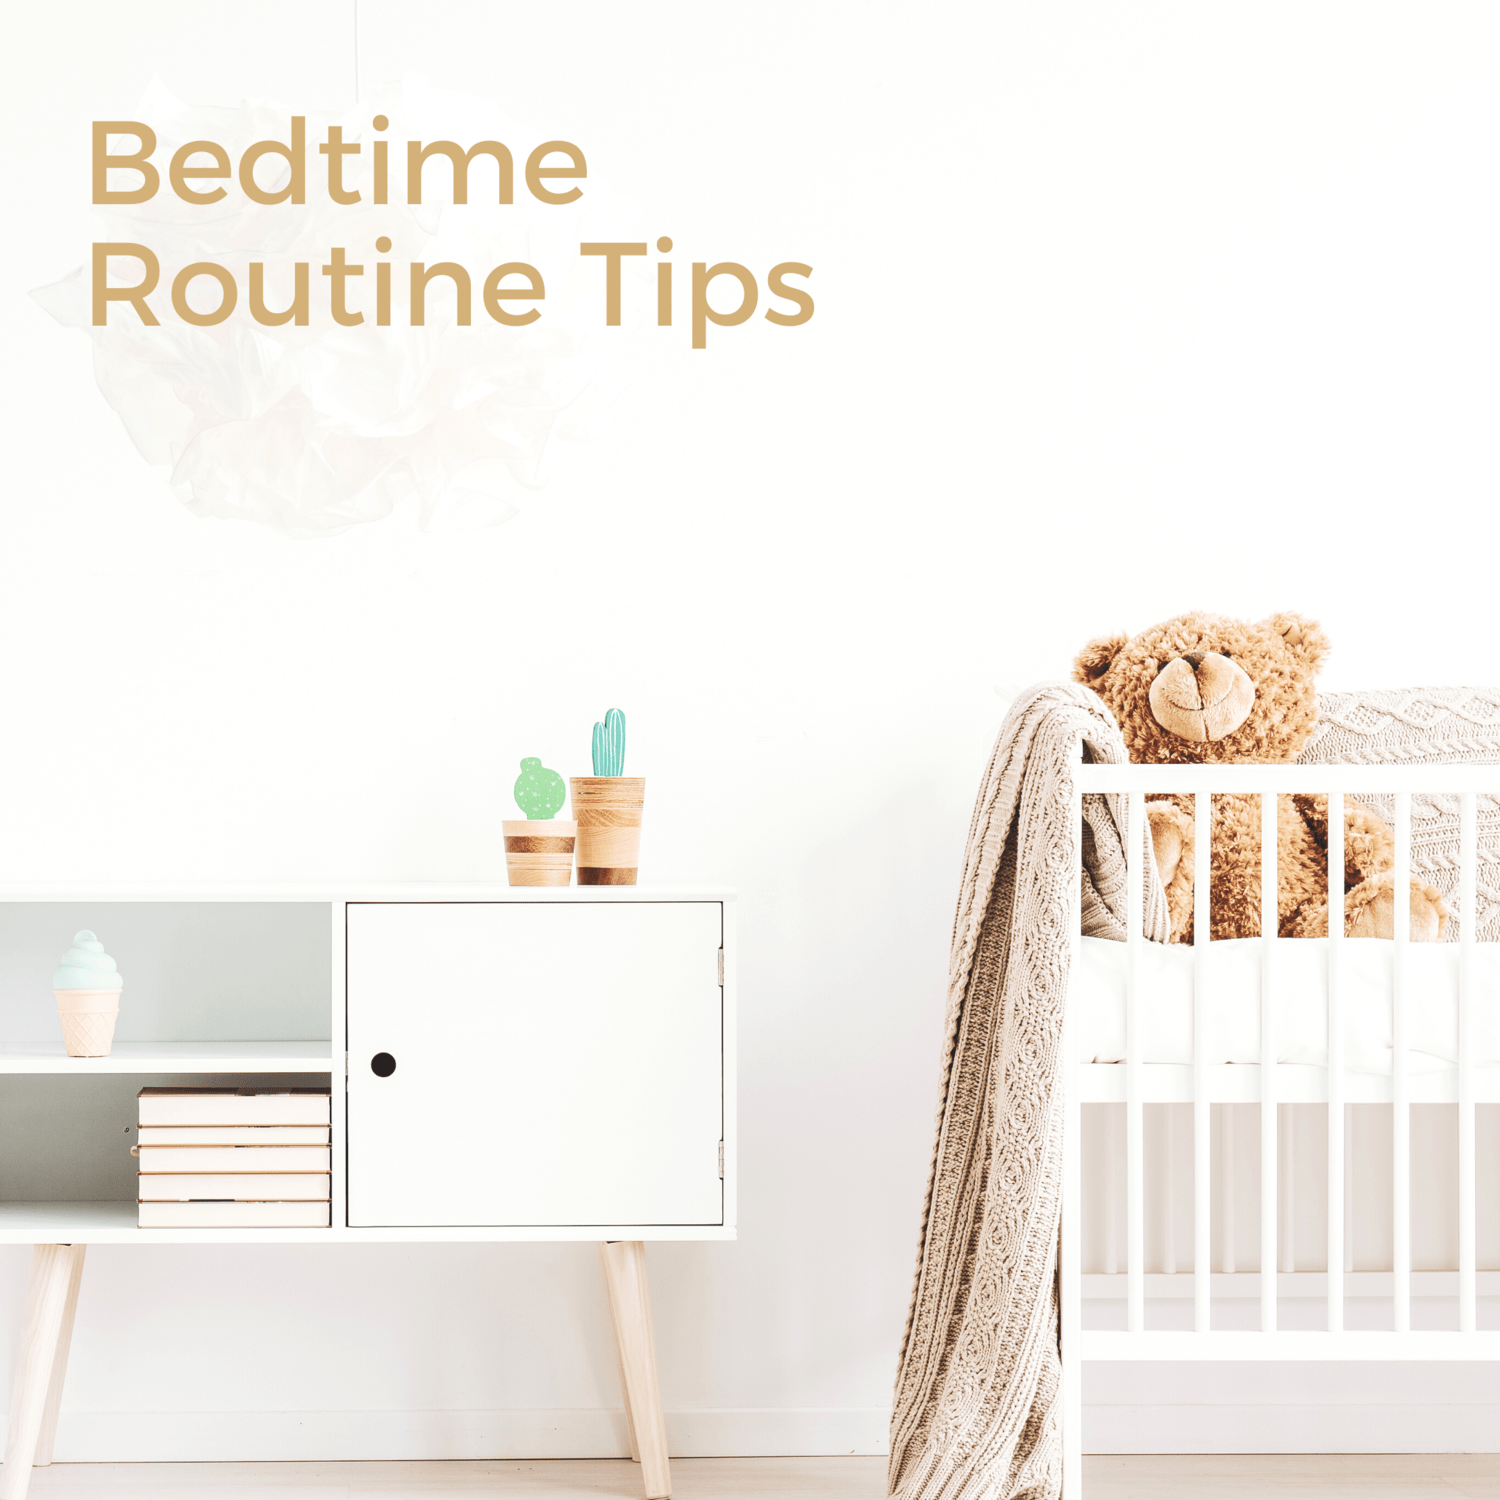 Bedtime routine tips for babies, toddlers and infants from Baby Sleep Consultant, The gentle Sleep Specialist